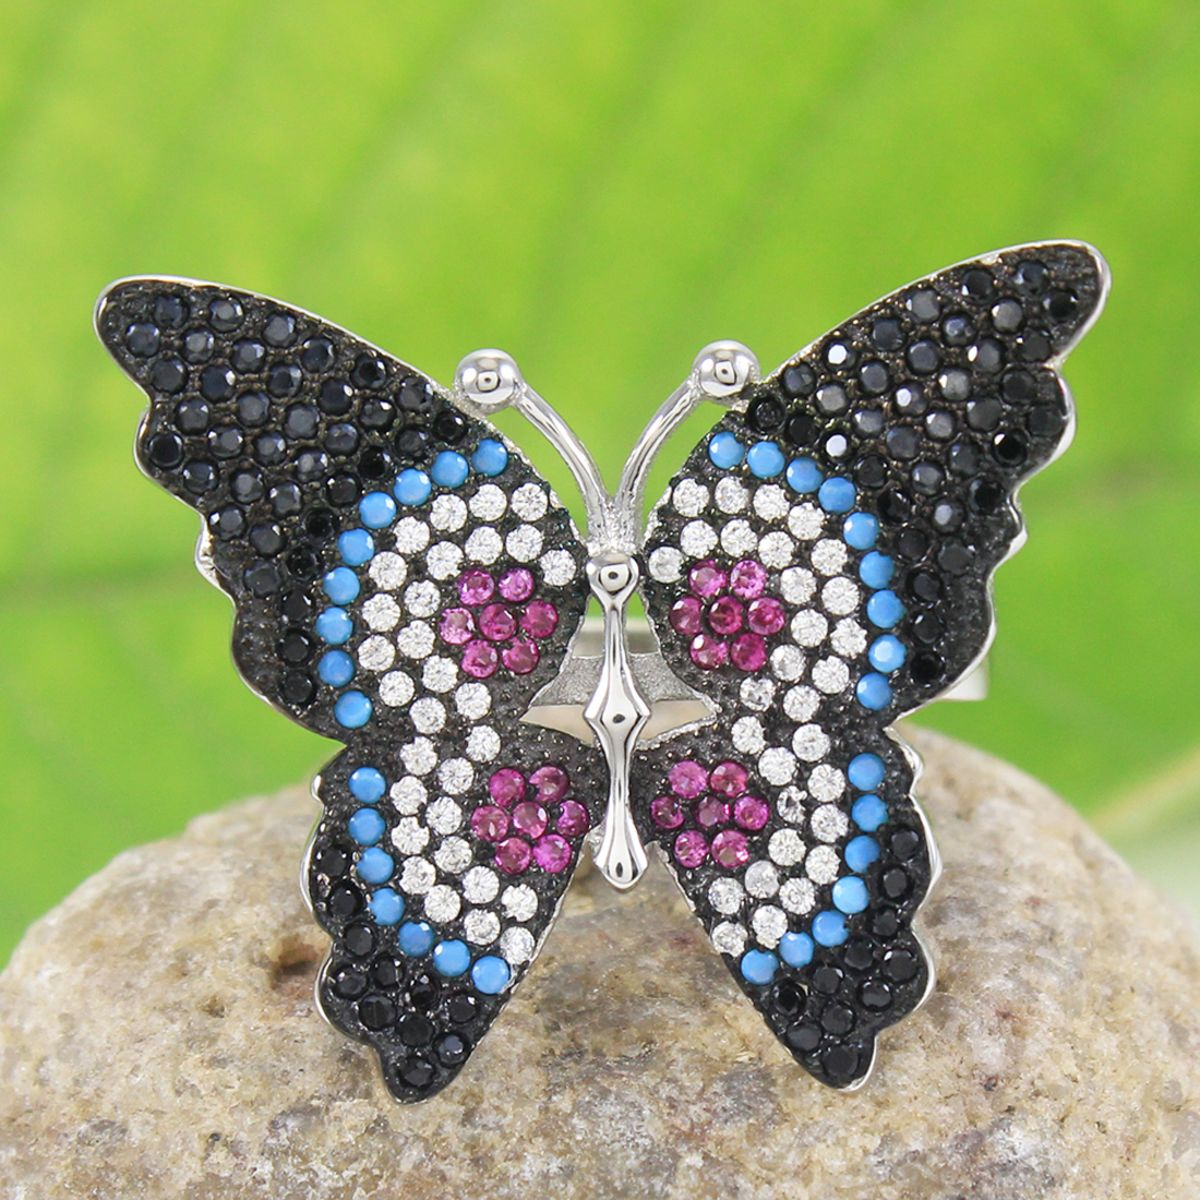 Shiny Handmade Butterfly Ring, Cubic Zircon As Promise Ring, Birthday Gift Sterling Silver Cocktail Ring With White,black & Turquoise Cz With Most Recent Sparkling Butterfly Rings (View 23 of 25)